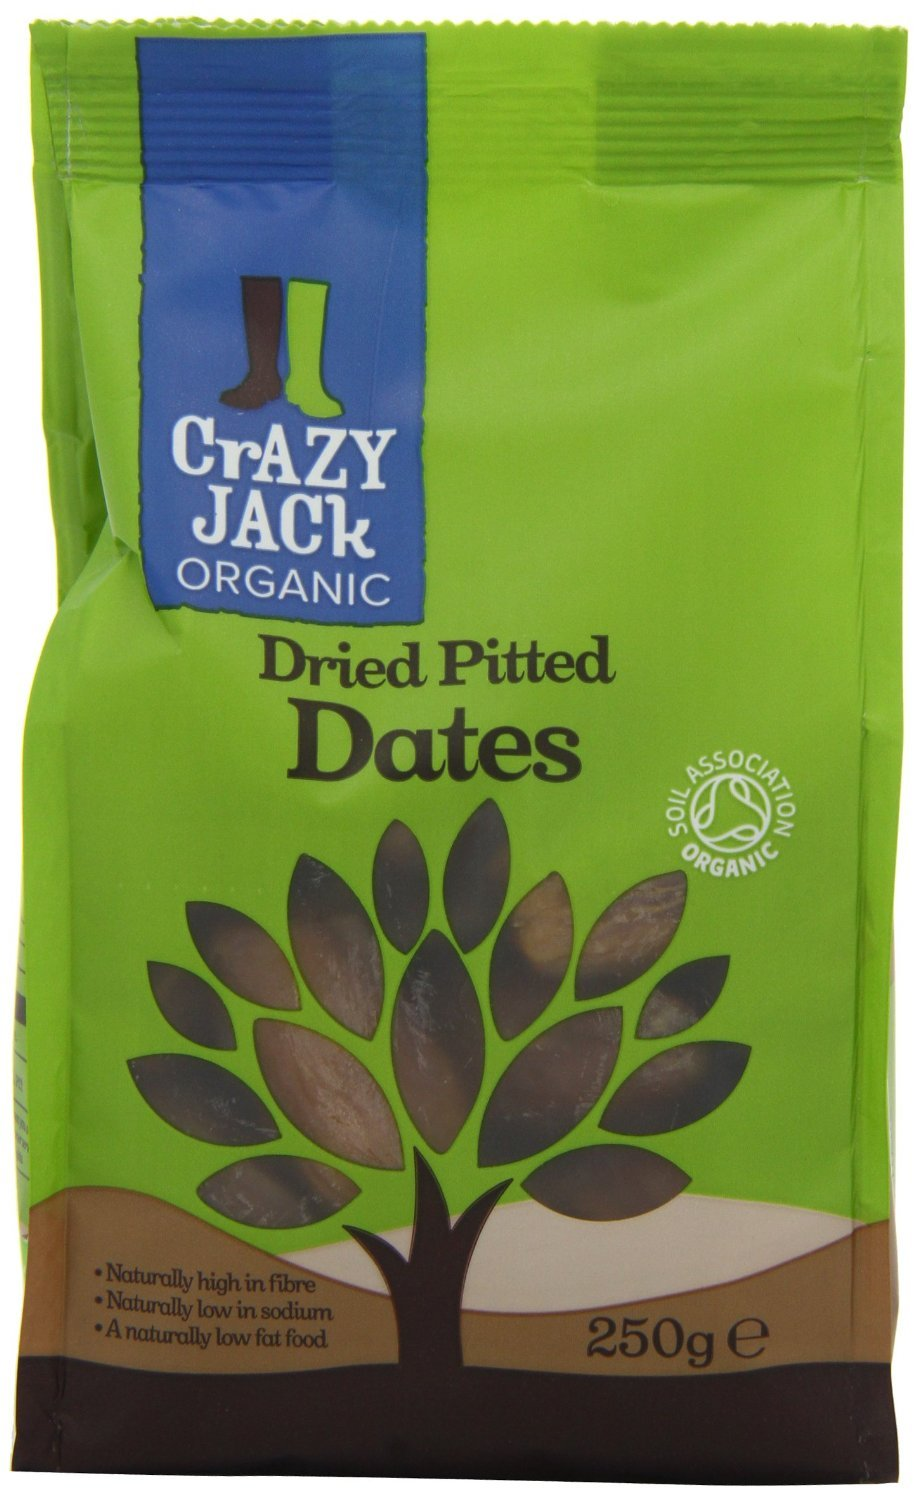 National uniform Max 71% OFF free shipping Crazy Jack Soft Ready to Eat Organic 250g - Pack Dates 6 of